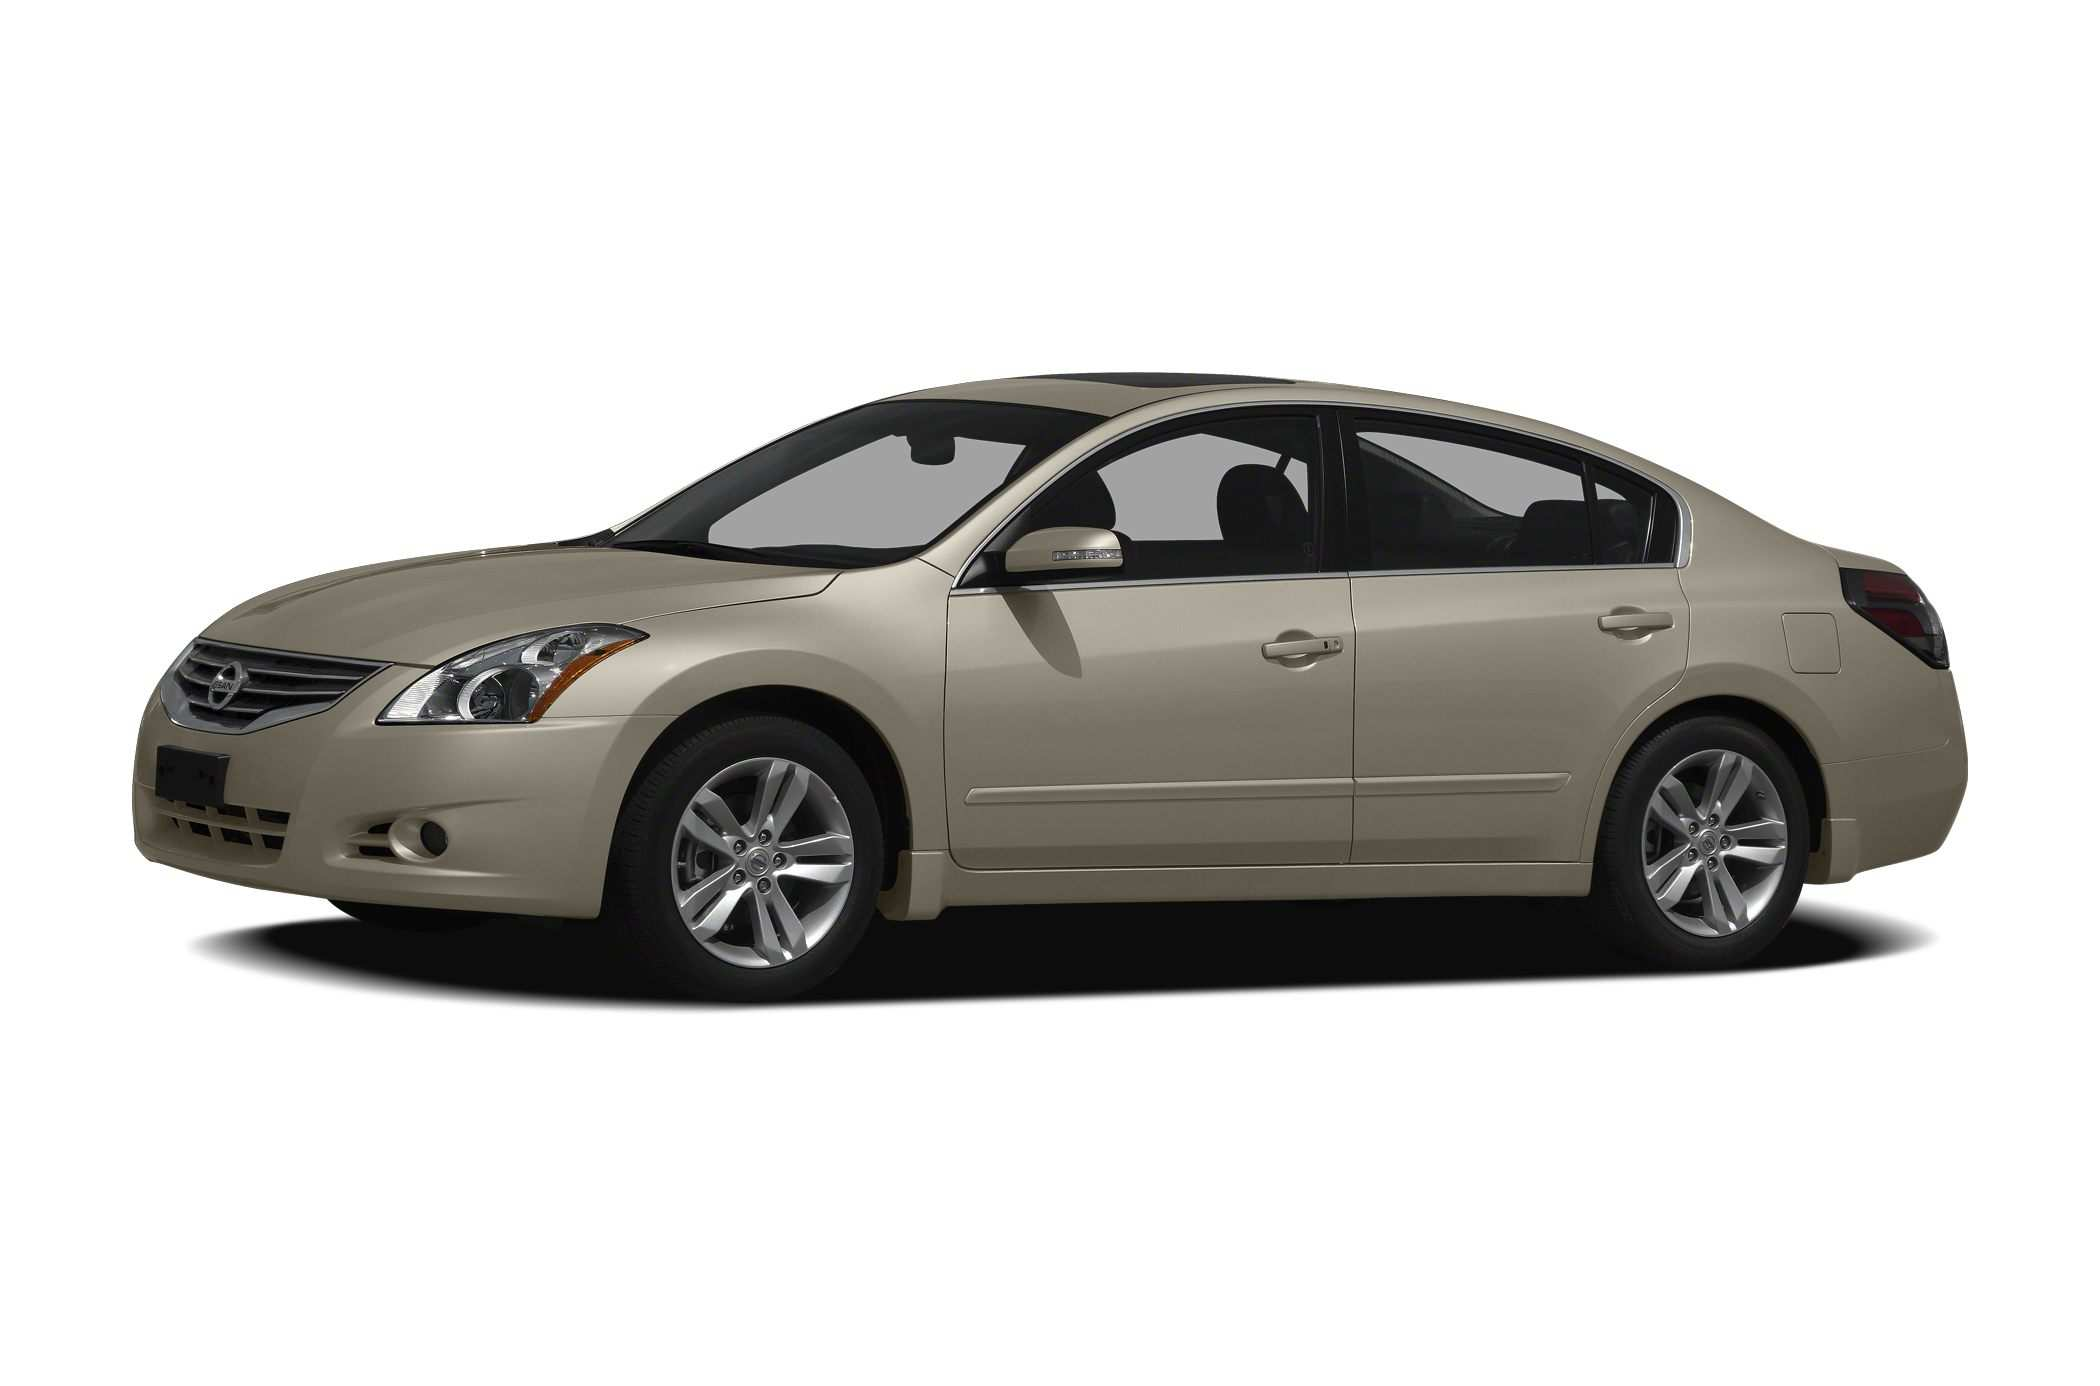 42 Best Review 2010 Nissan Altima Price and Review with 2010 Nissan Altima